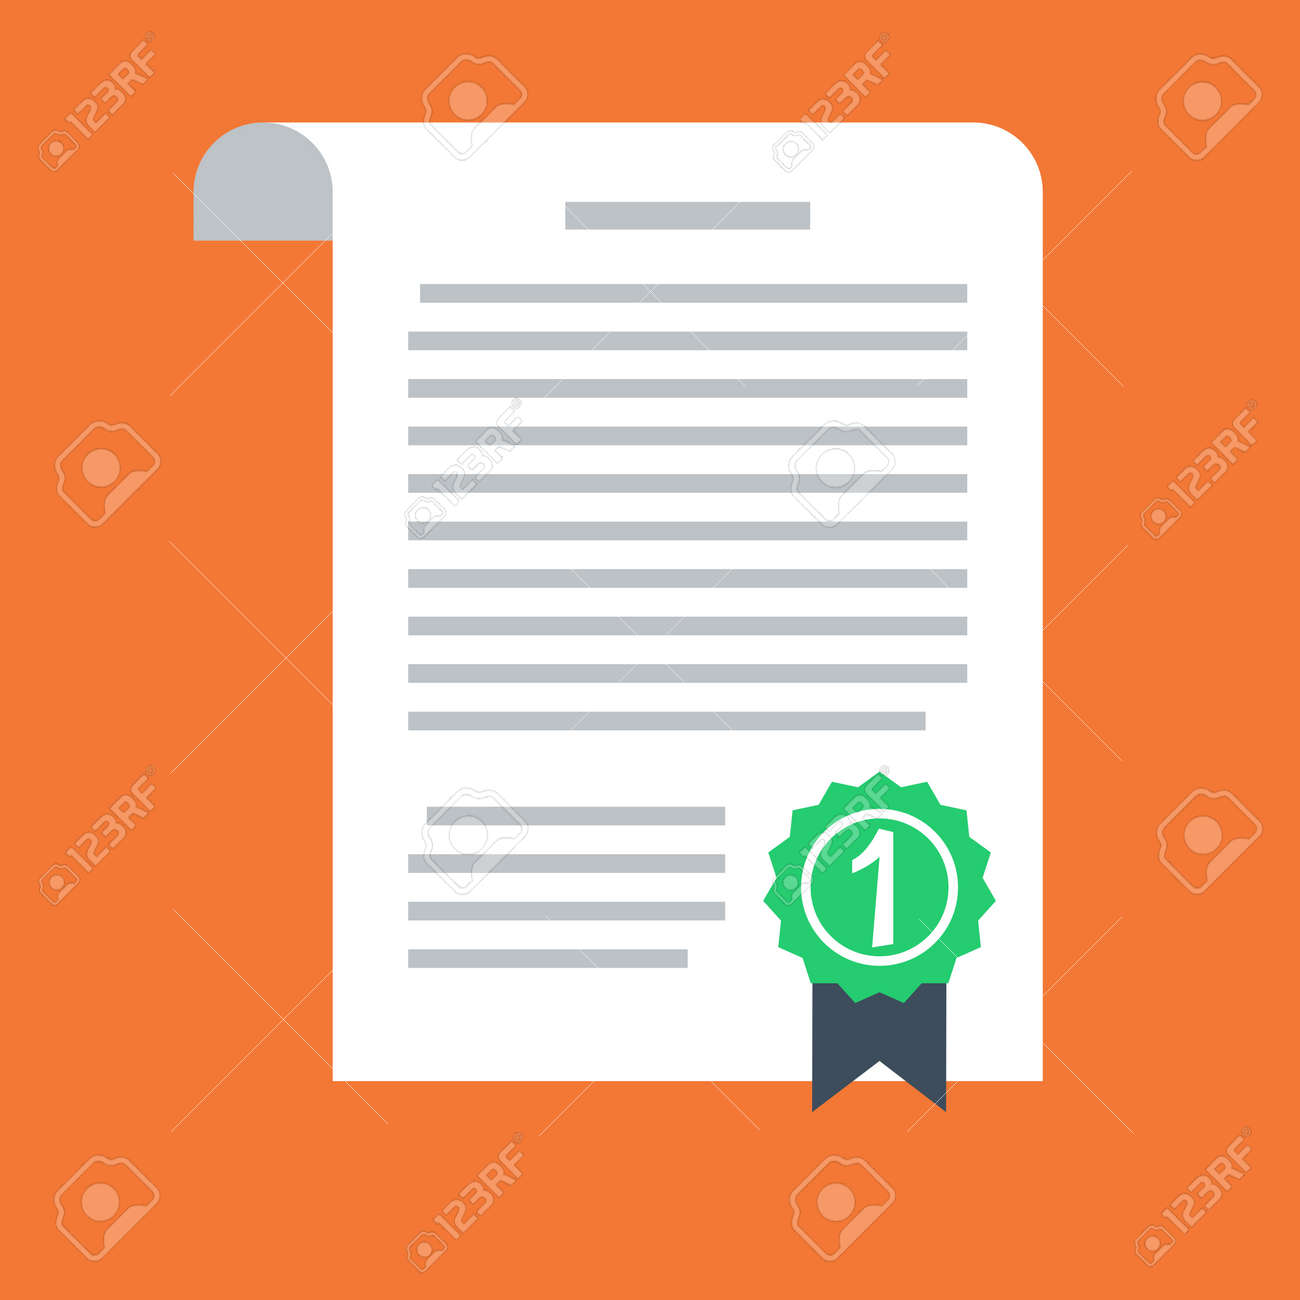 Contract vector icon in a flat style isolated on a colored background. - 134433458